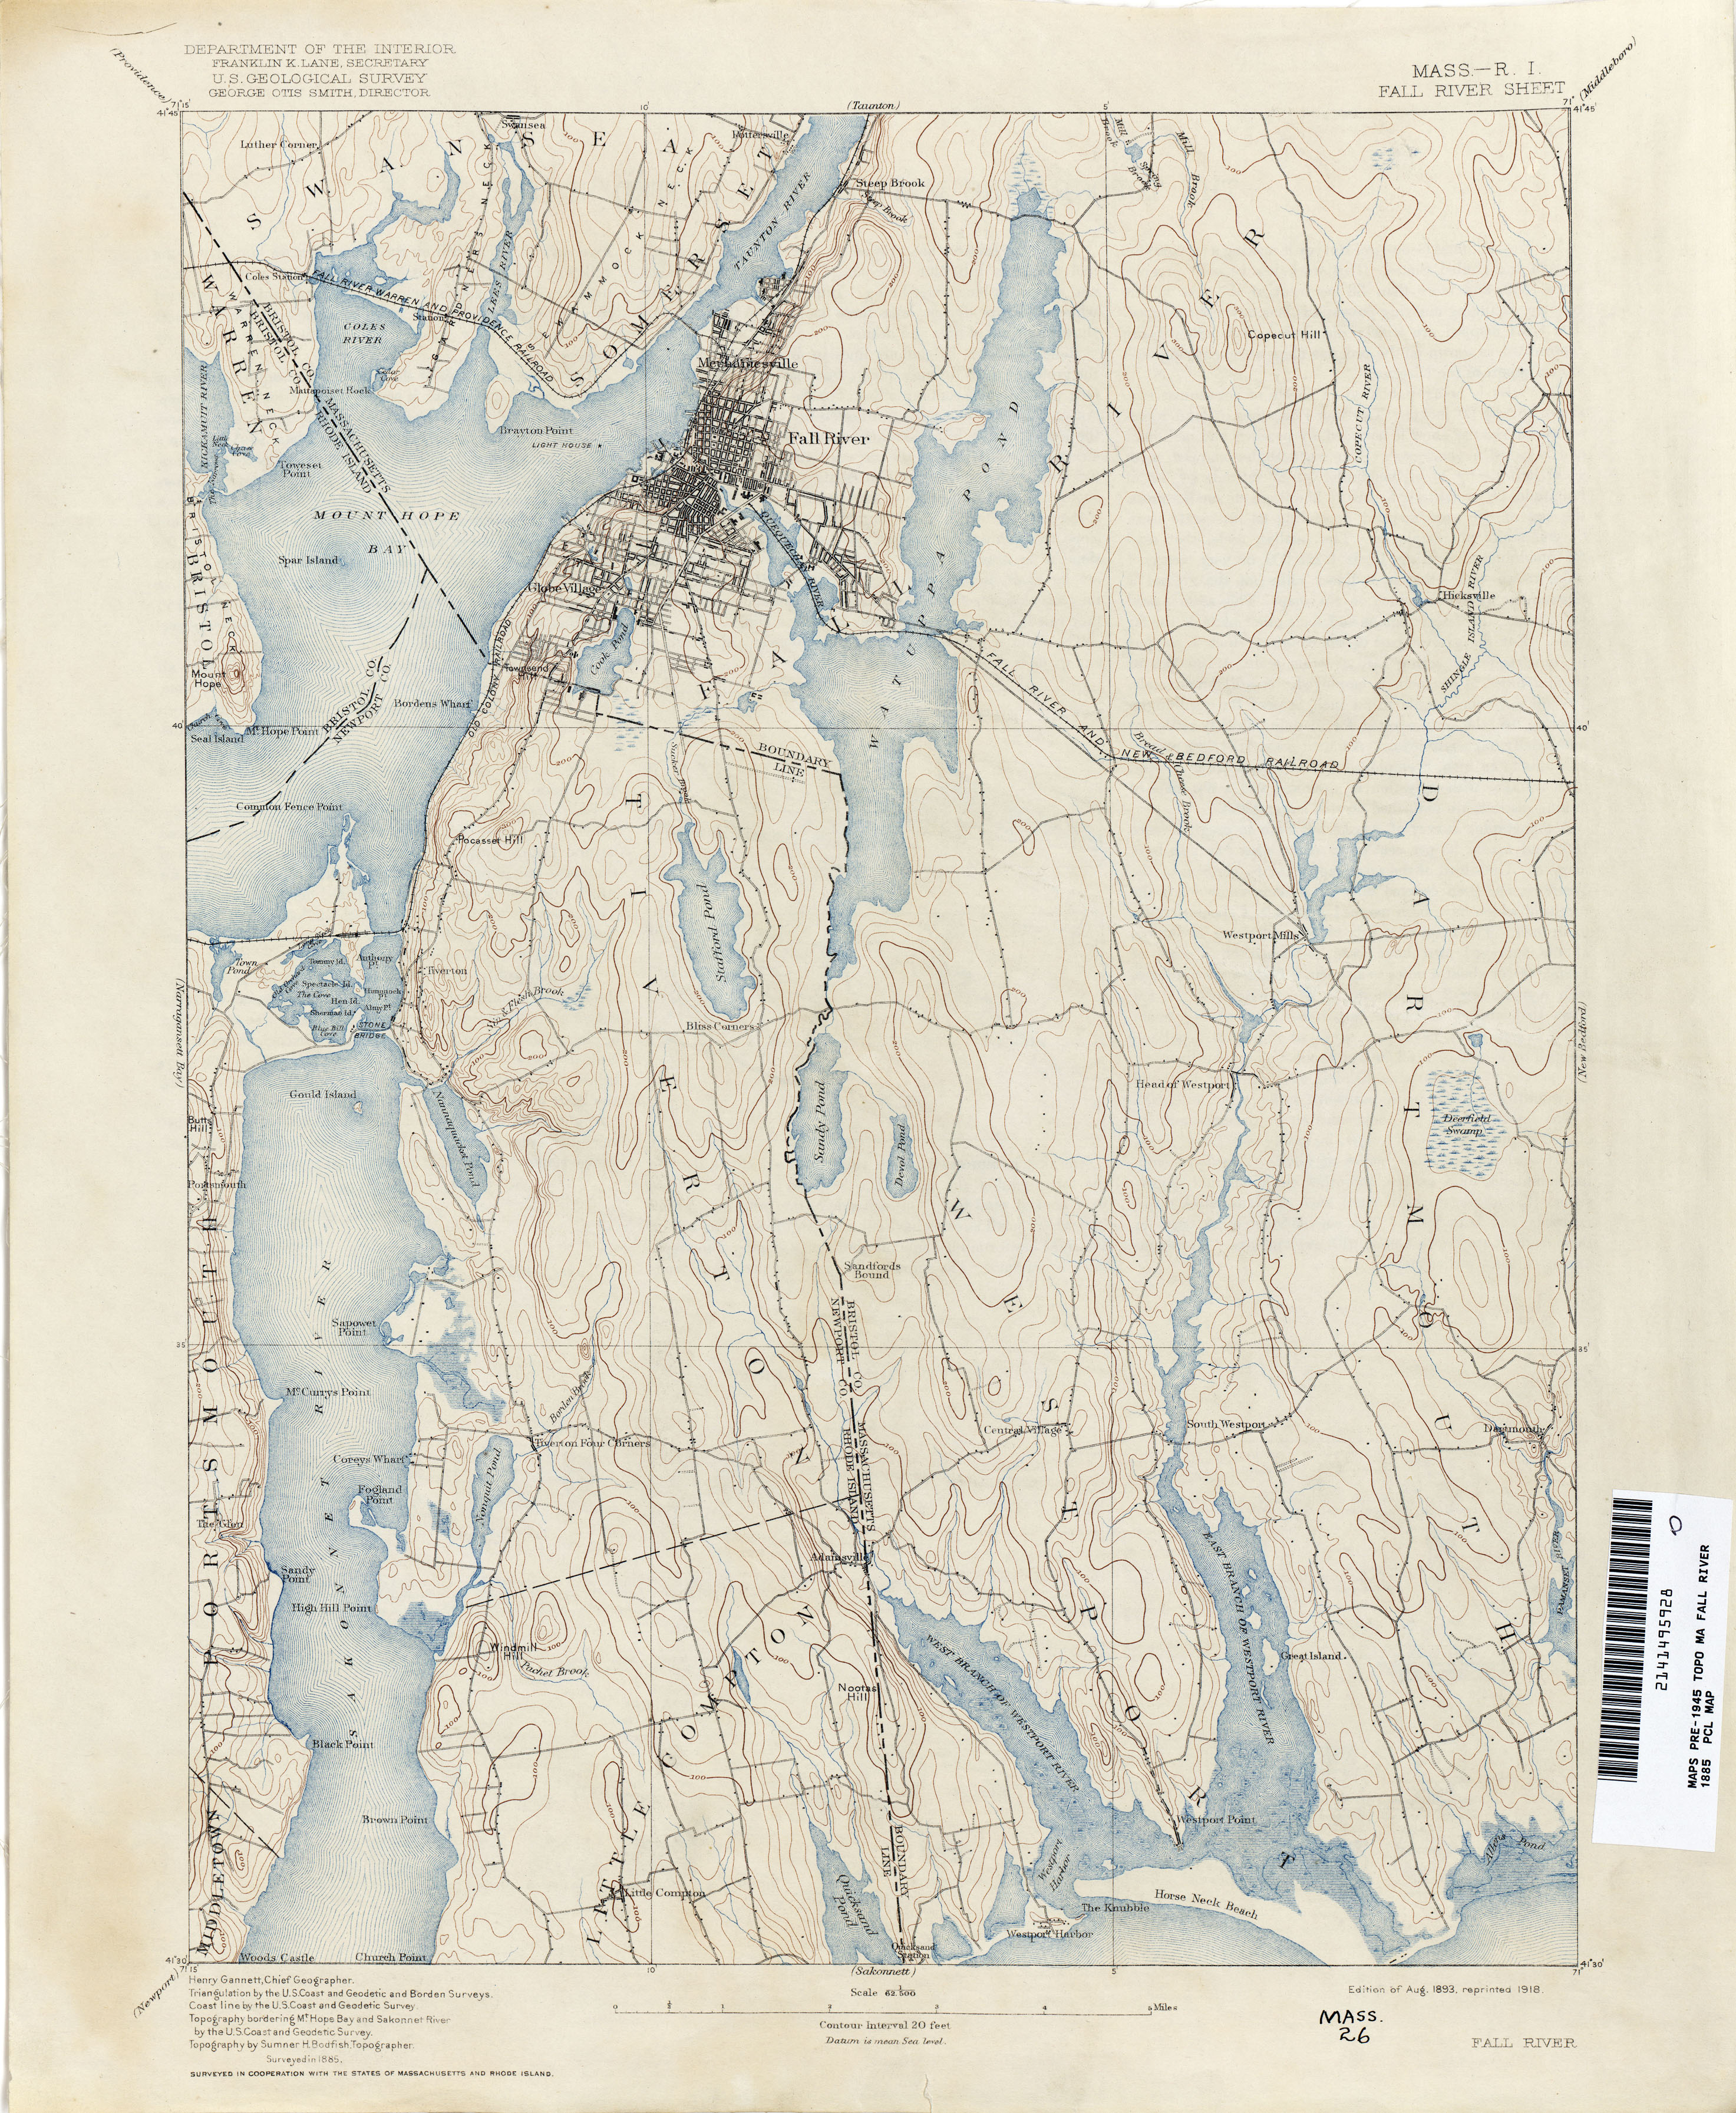 Rhode Island Historical Topographic Maps Perry Castaneda Map